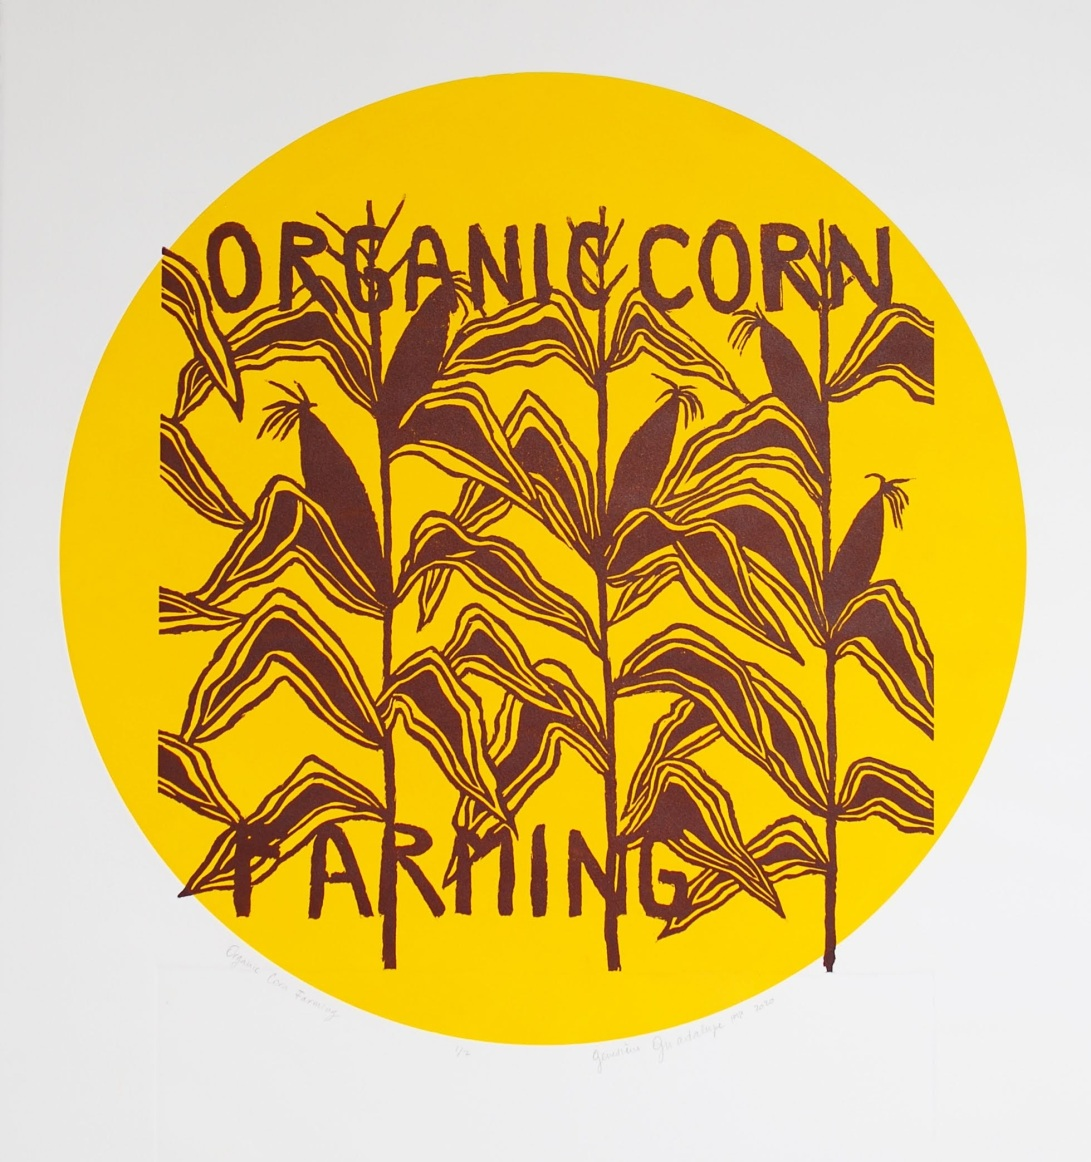 genevieve-guadalupe-organic-corn-farming-relief-woodcut-40x40cm-2020